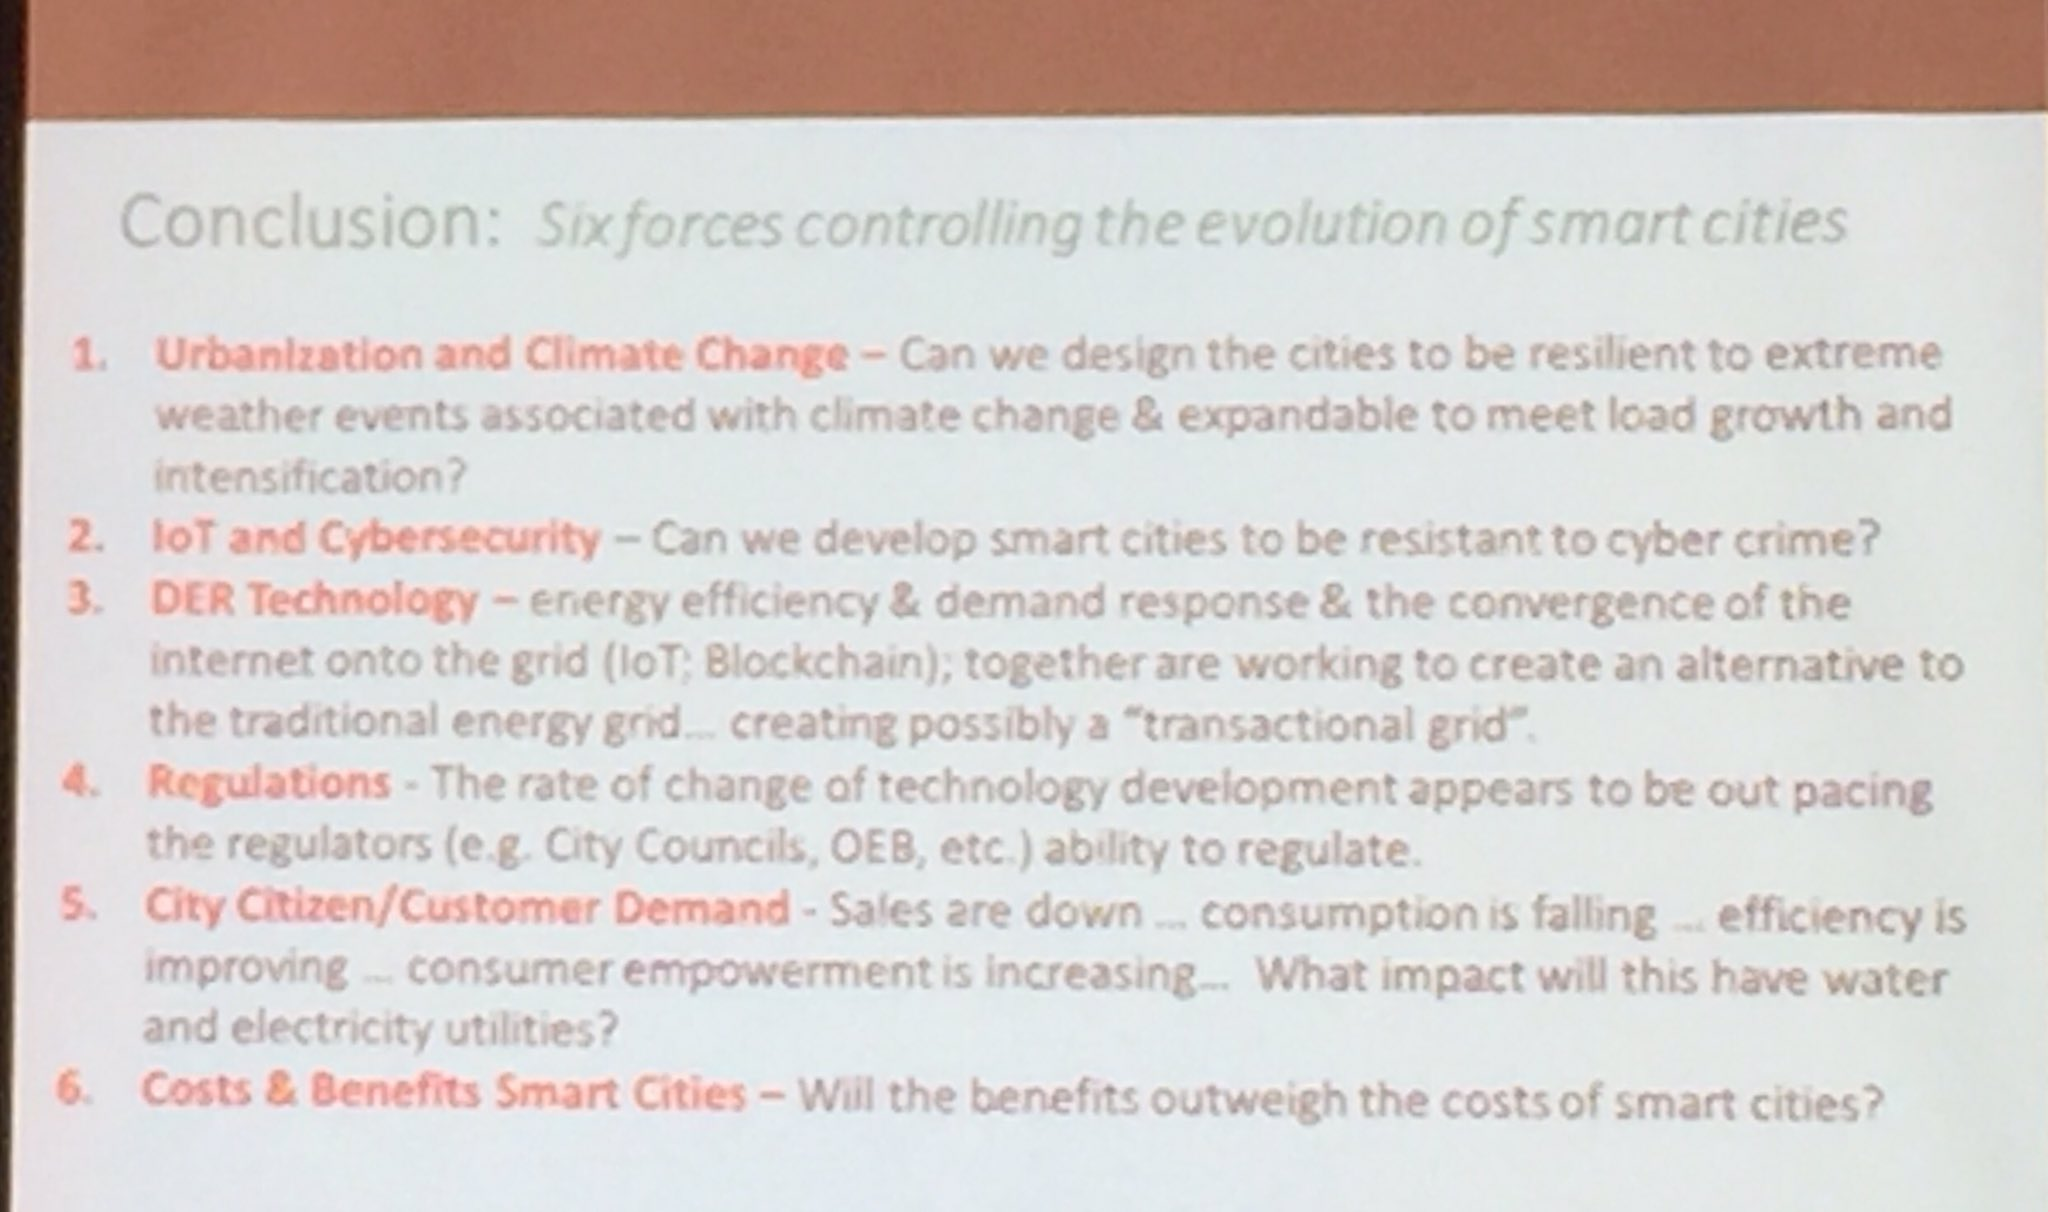 6 forces controlling the evolution of smart cities #BigDataTO @RyersonU https://t.co/DmPZbUnO0J